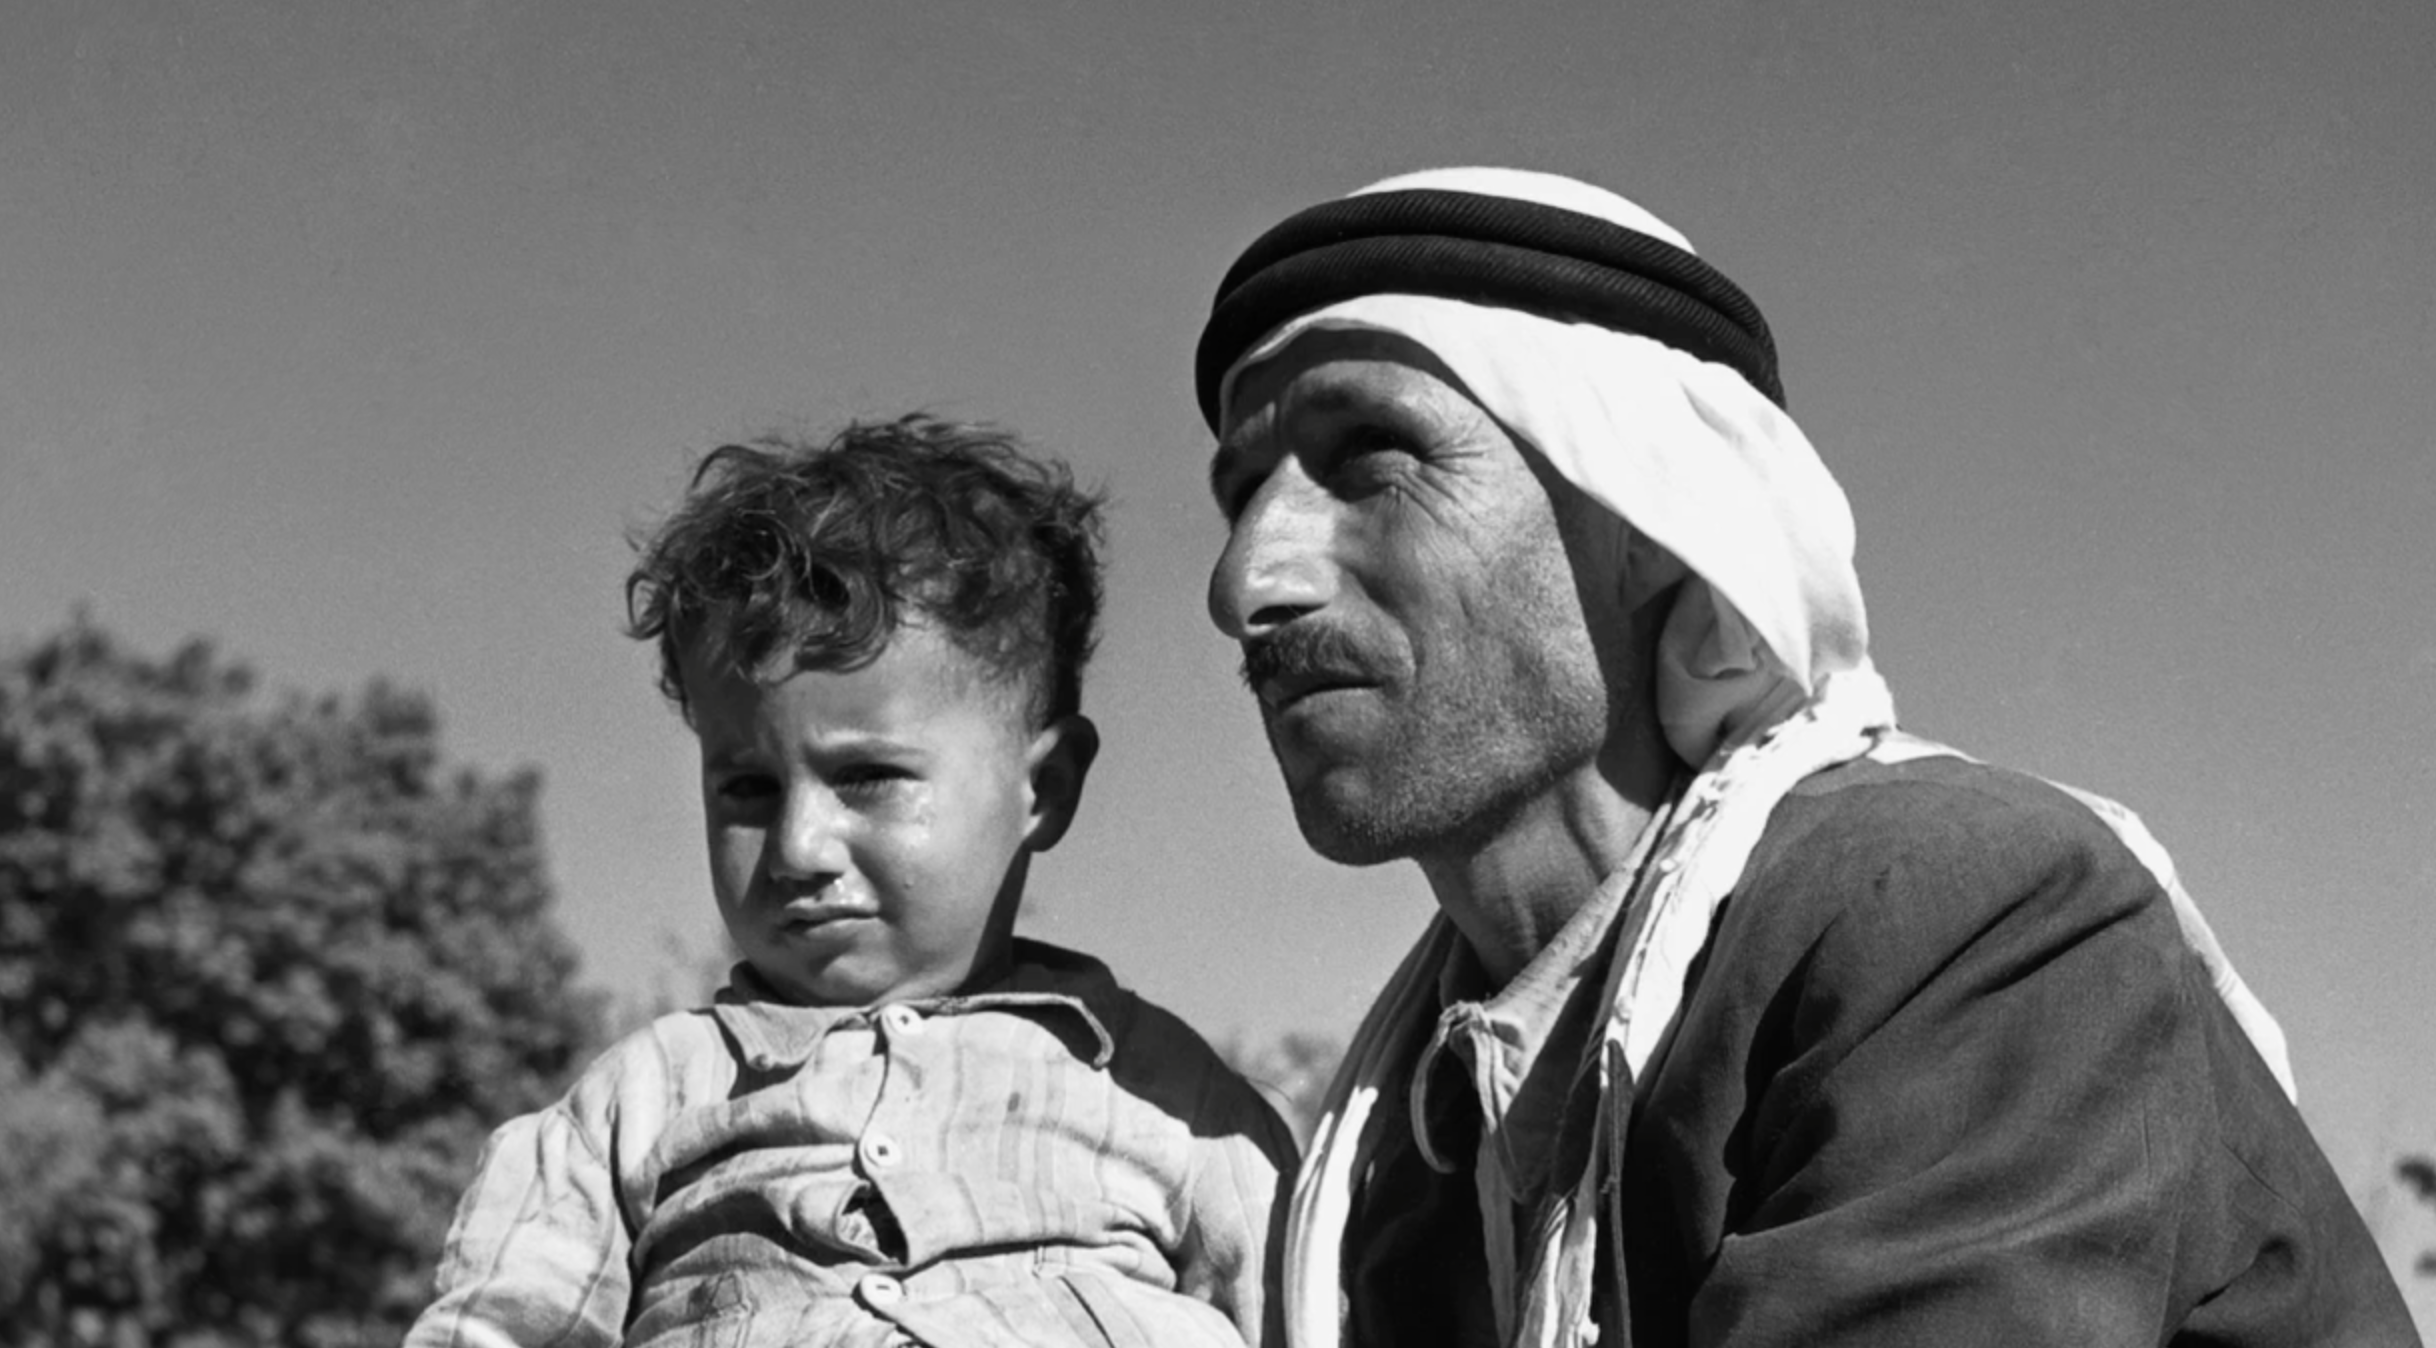 Arab with Child